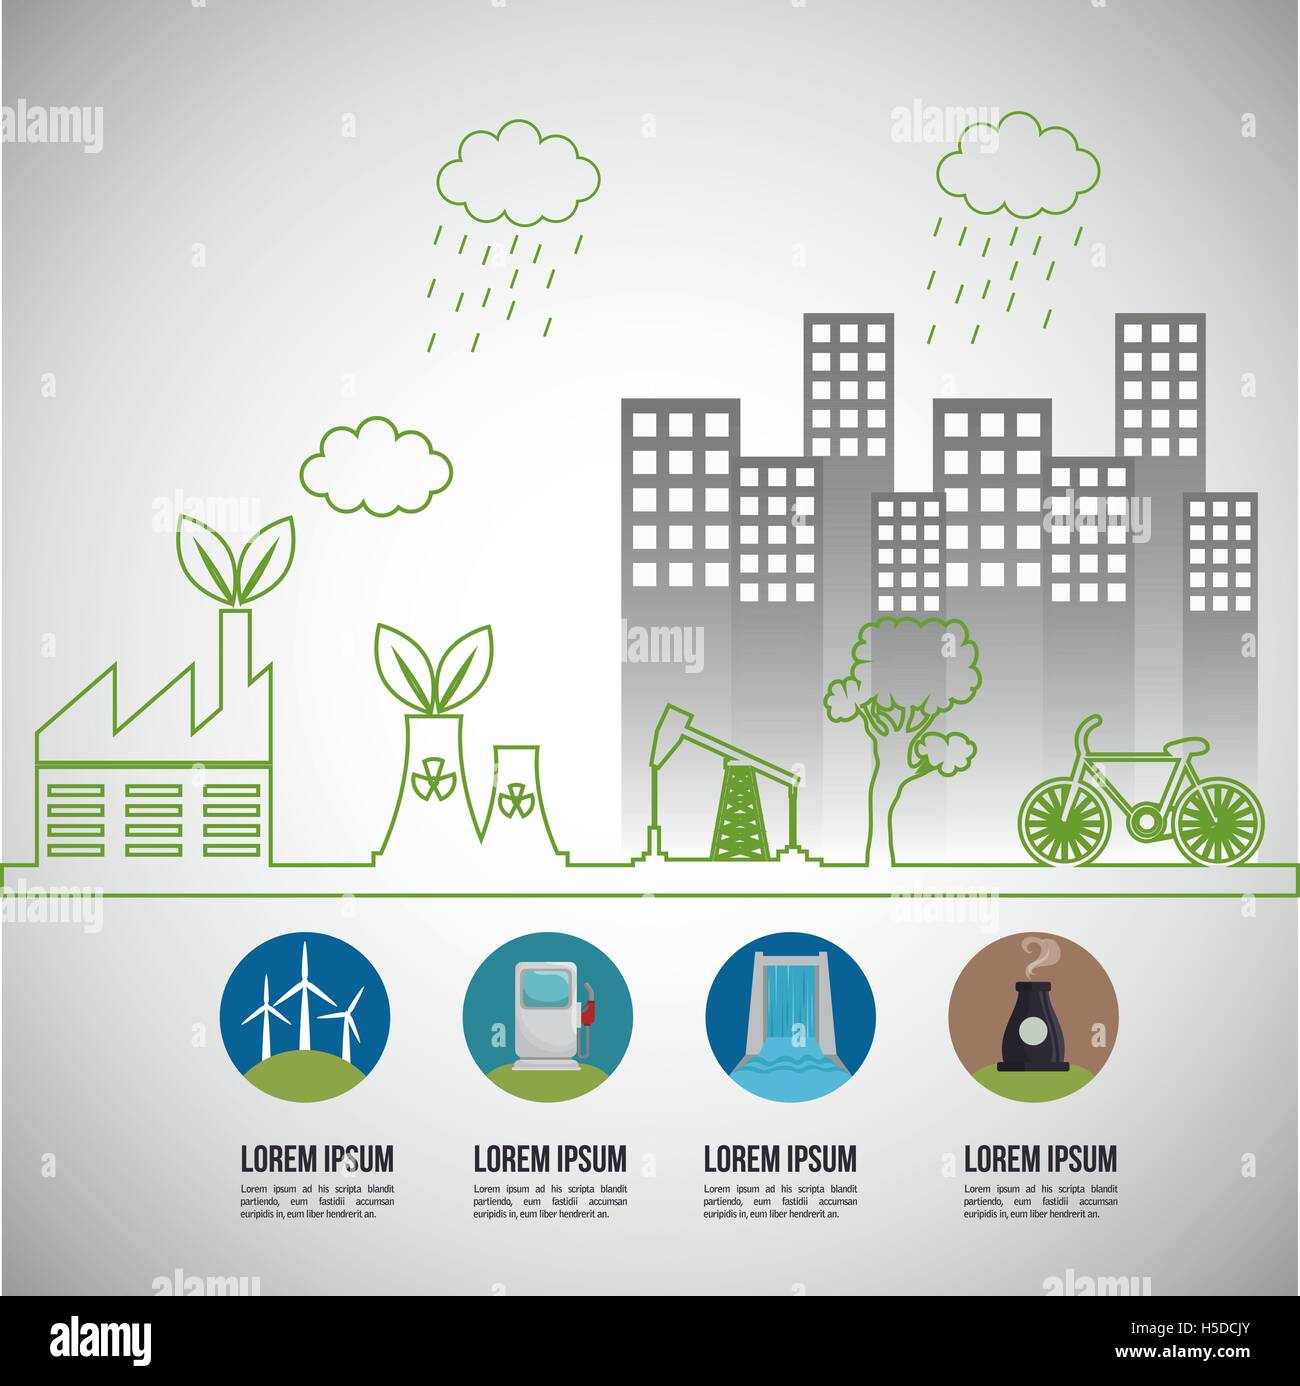 environmental issues infographic elements - Stock Vector